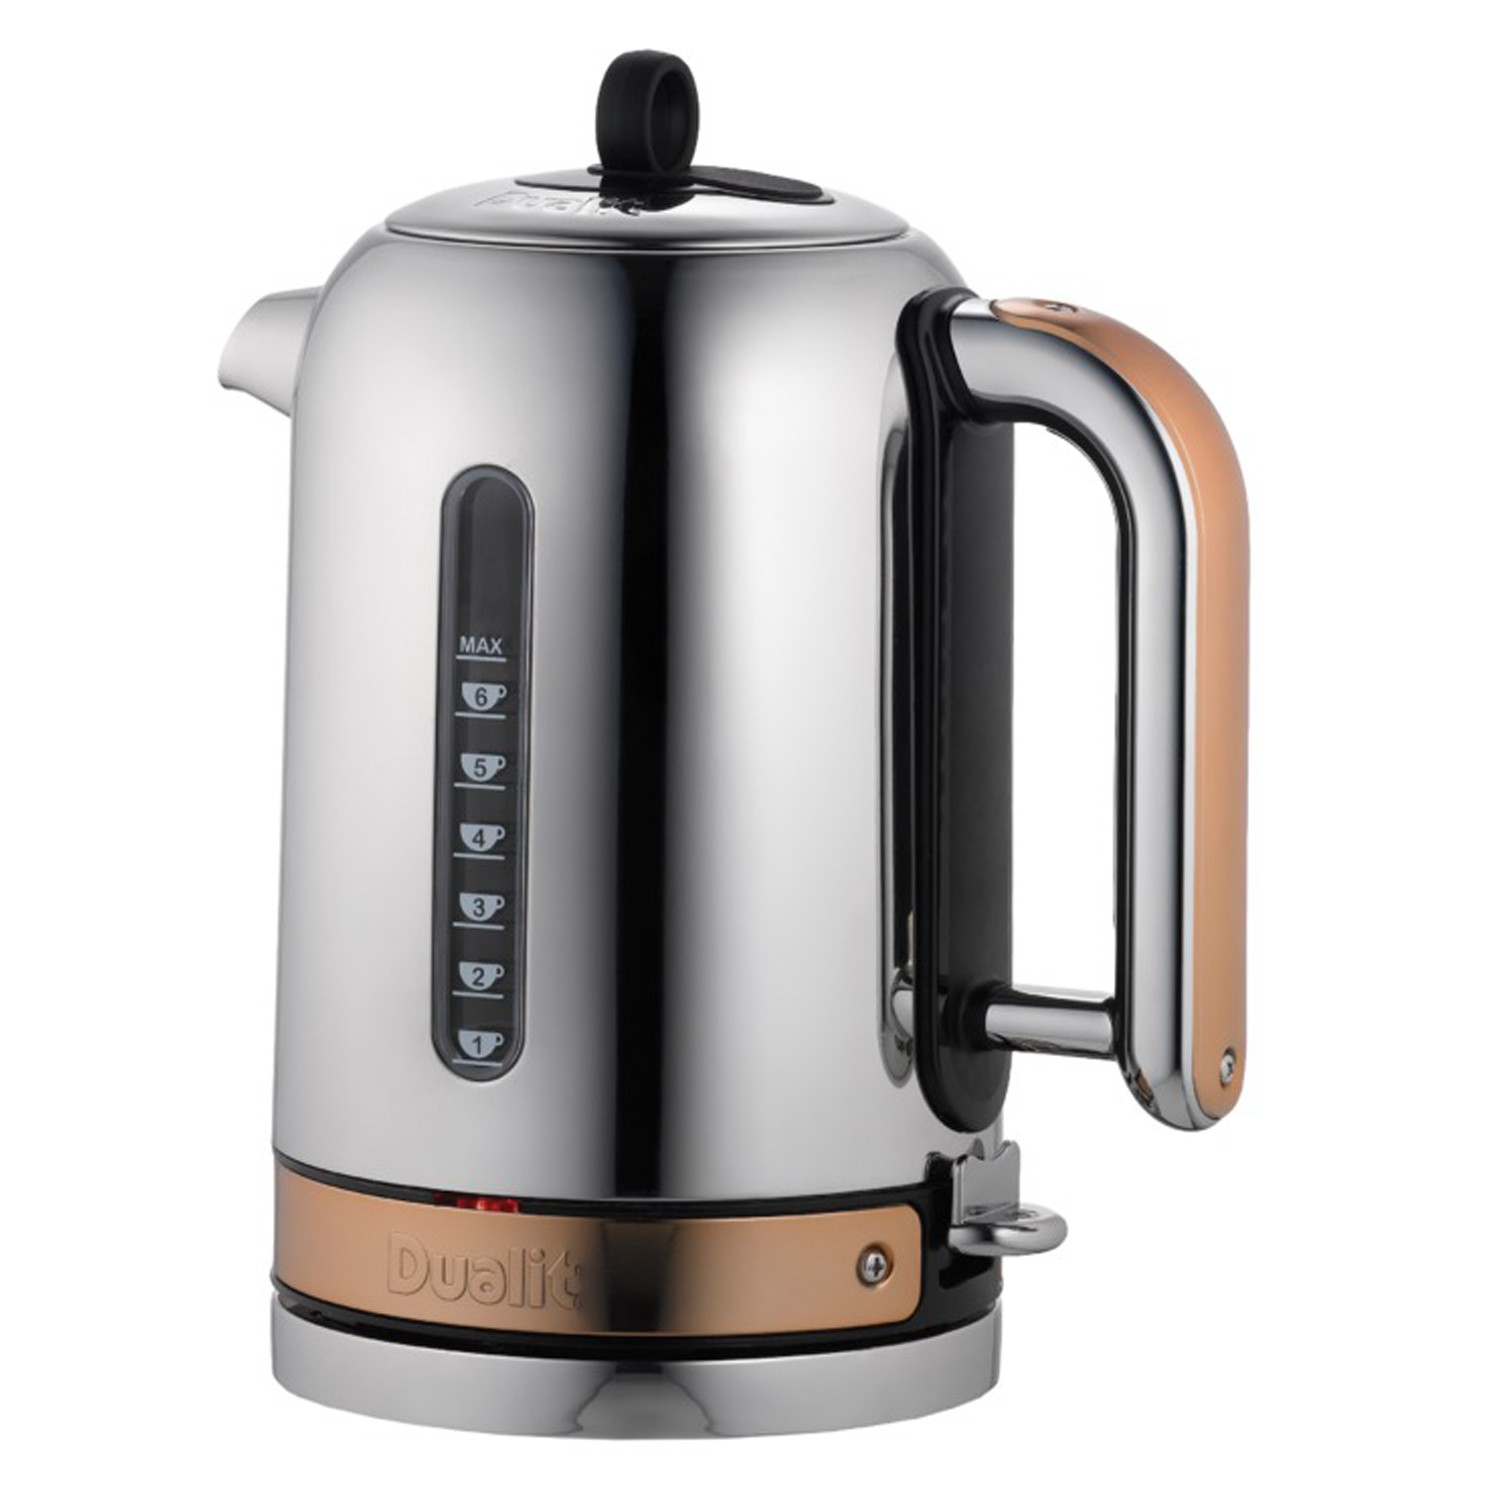 Dualit Classic Kettle Copper Leekes